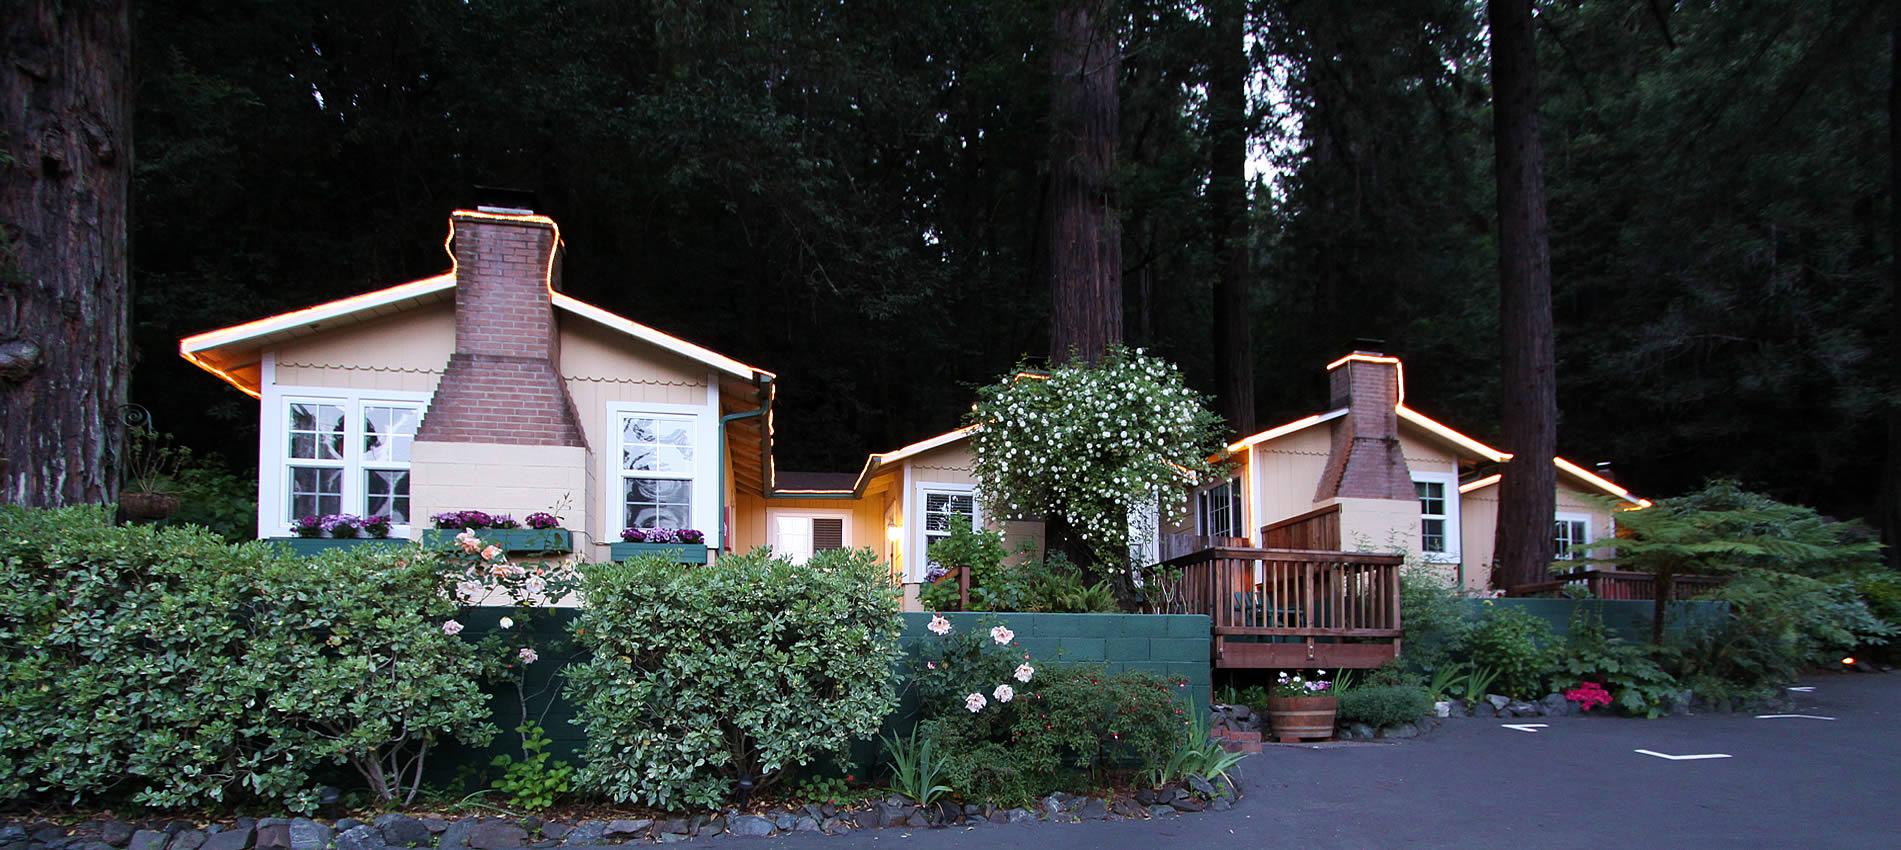 fern grove cottages - cabins - russian river ca